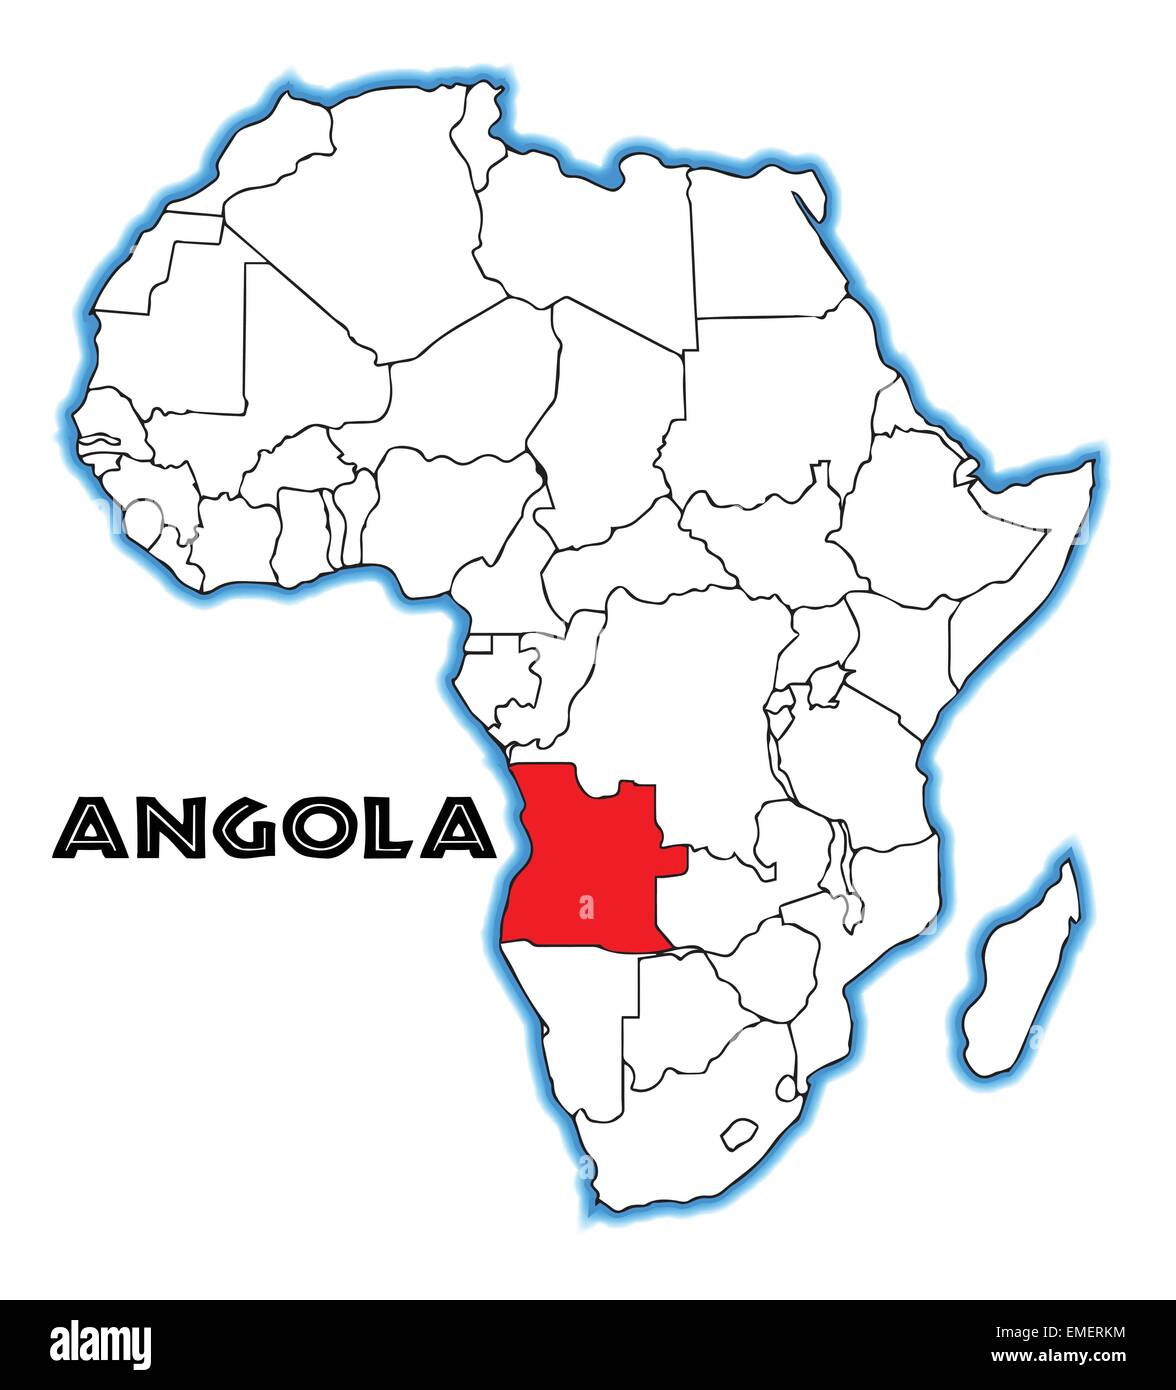 angola on a map Angola Africa Map High Resolution Stock Photography And Images Alamy angola on a map